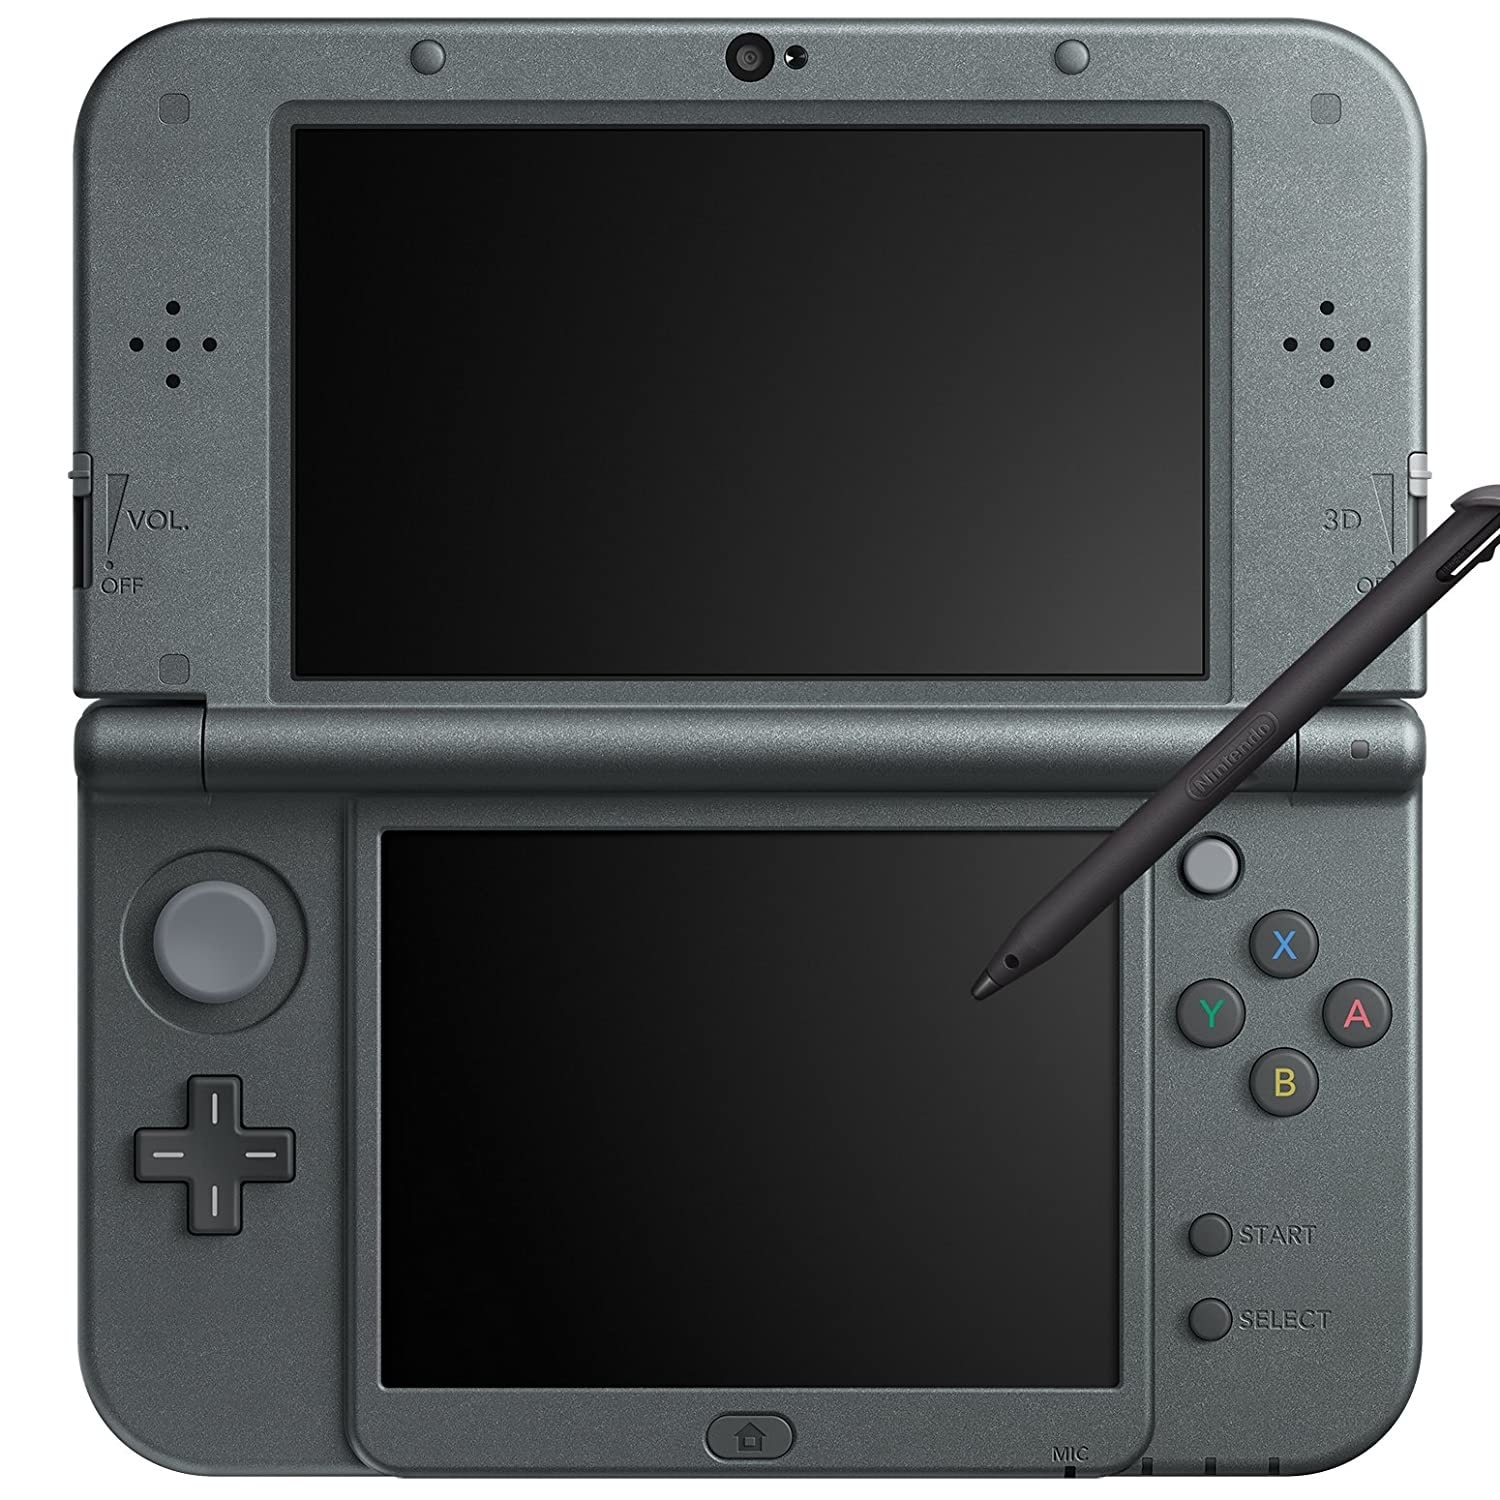 Handheld Game Touch Screen LCD Displays Cross Keypad System Console Bundle Charger & Stylus For Nintendo 3DSXL/ New 3DSXL